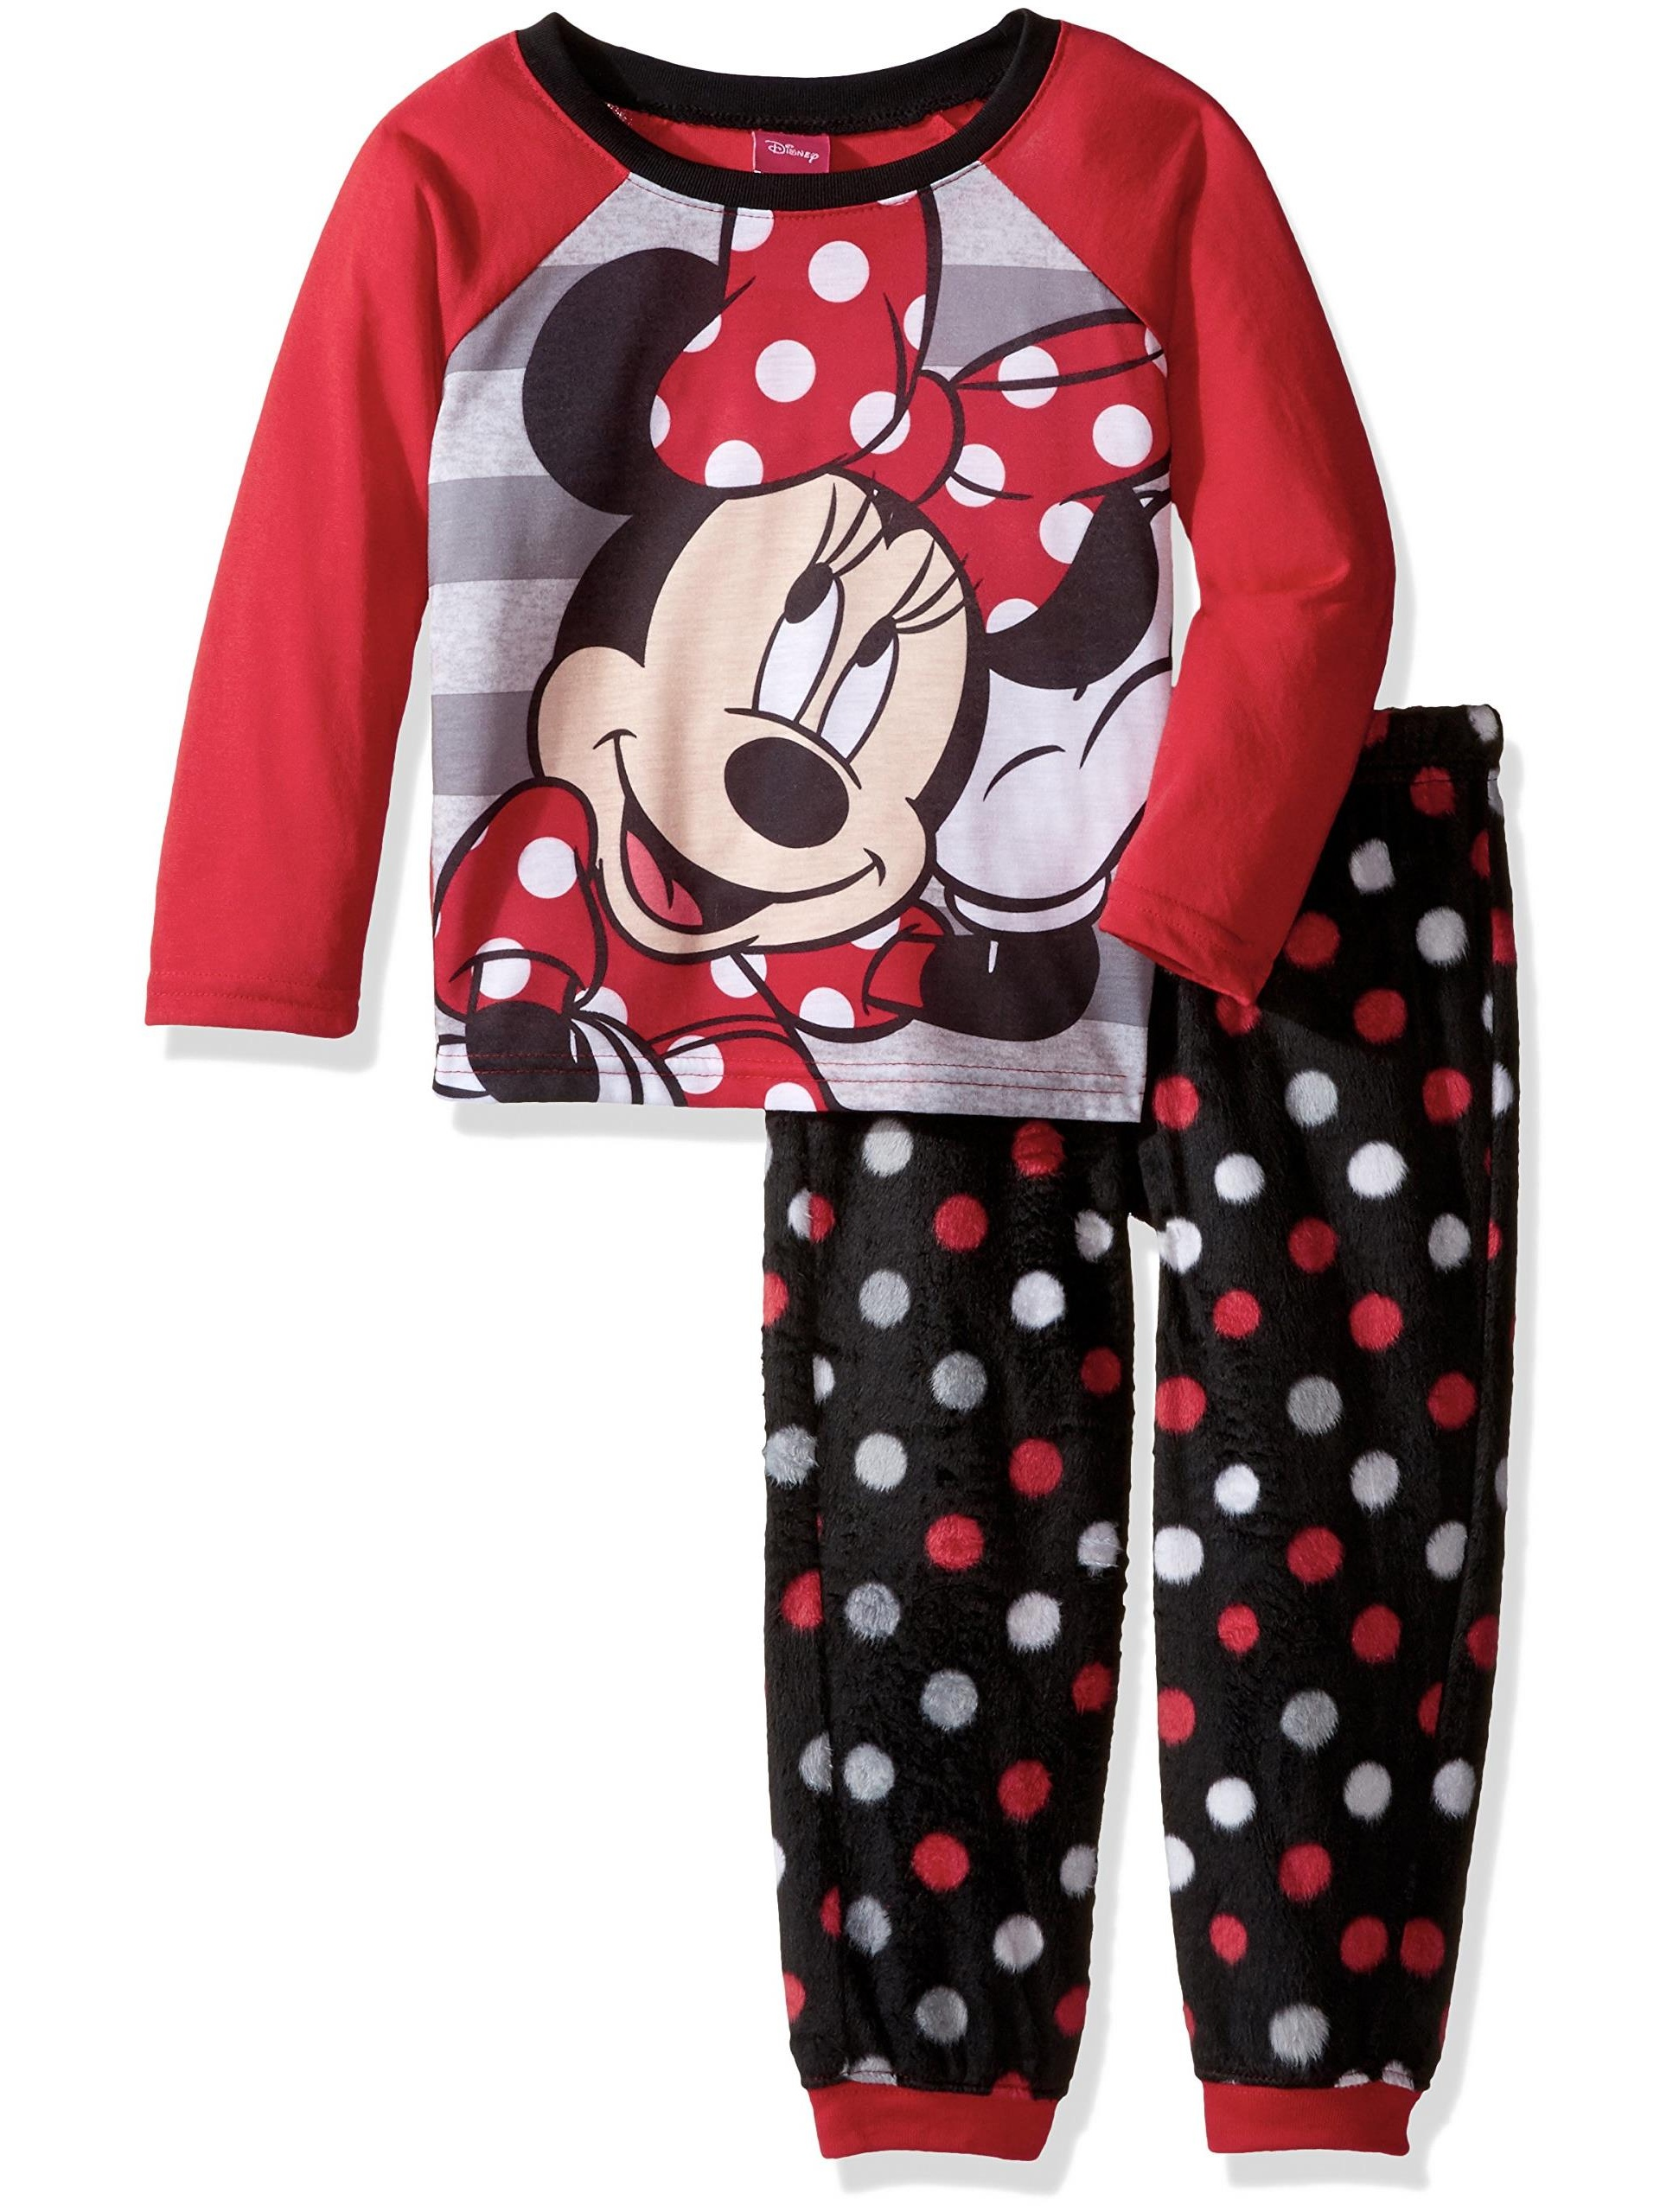 Disney Girls' Minnie Mouse 2-Piece Pajama Jogger Set, Red, Size: 8